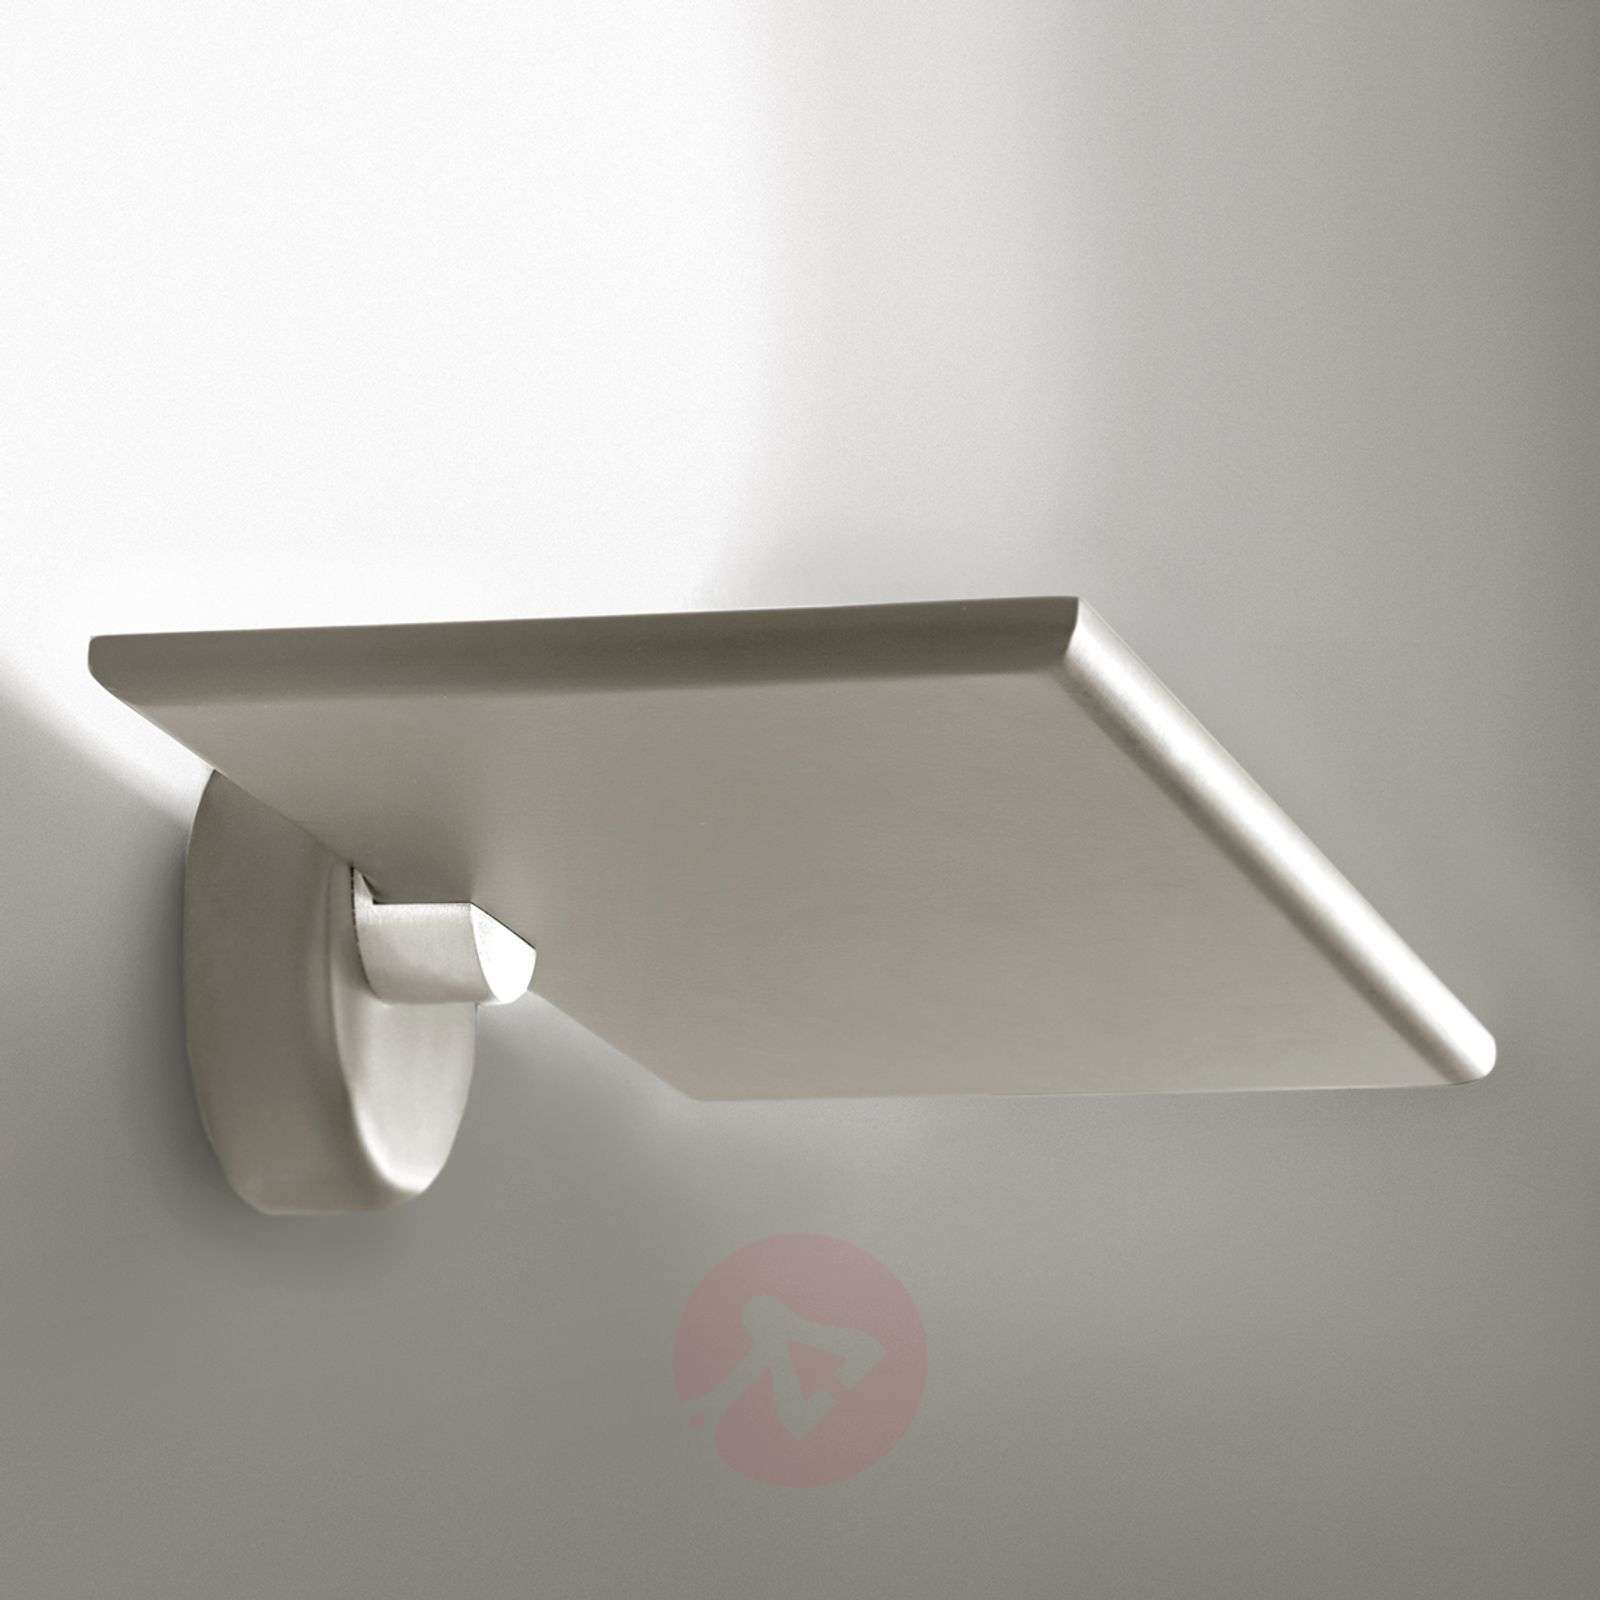 Designer wall lamp GiuUp with LEDs-6701358-01